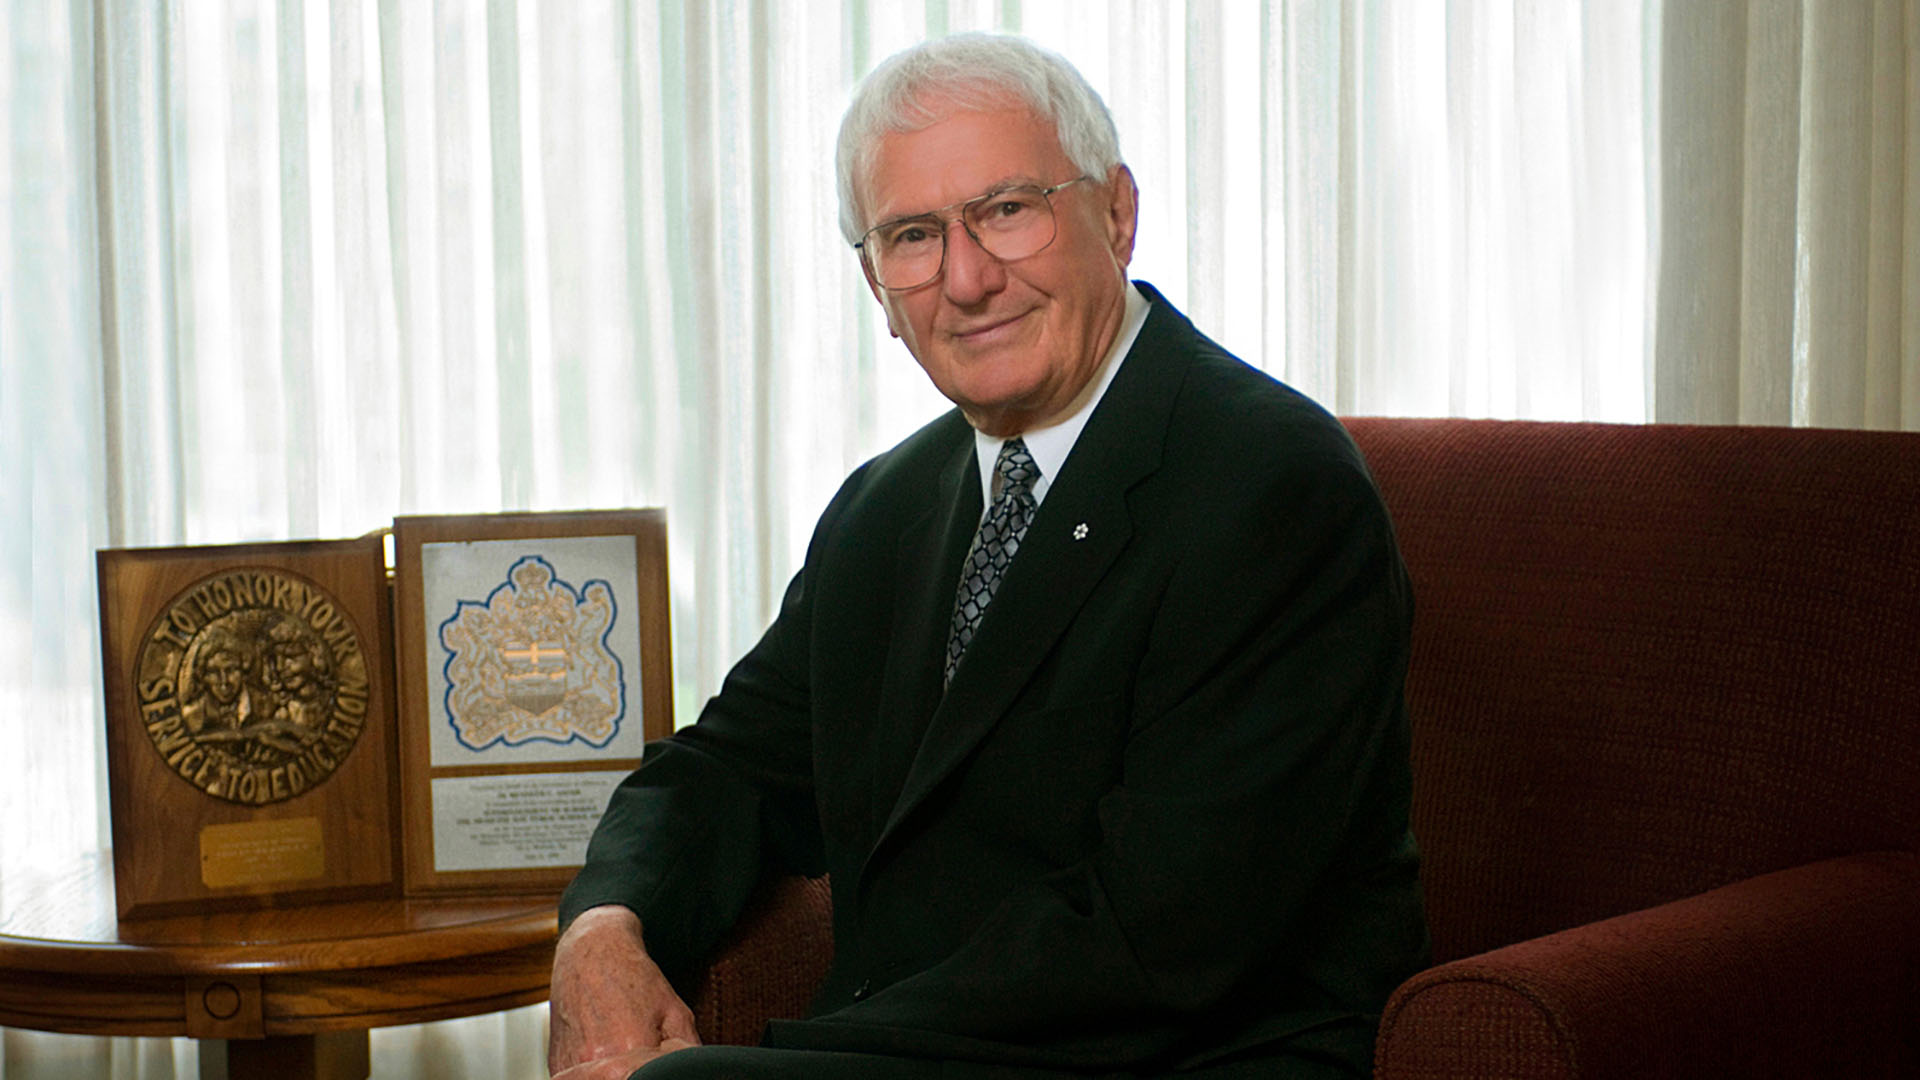 Alberta Order of Excellence member Kenneth Sauer